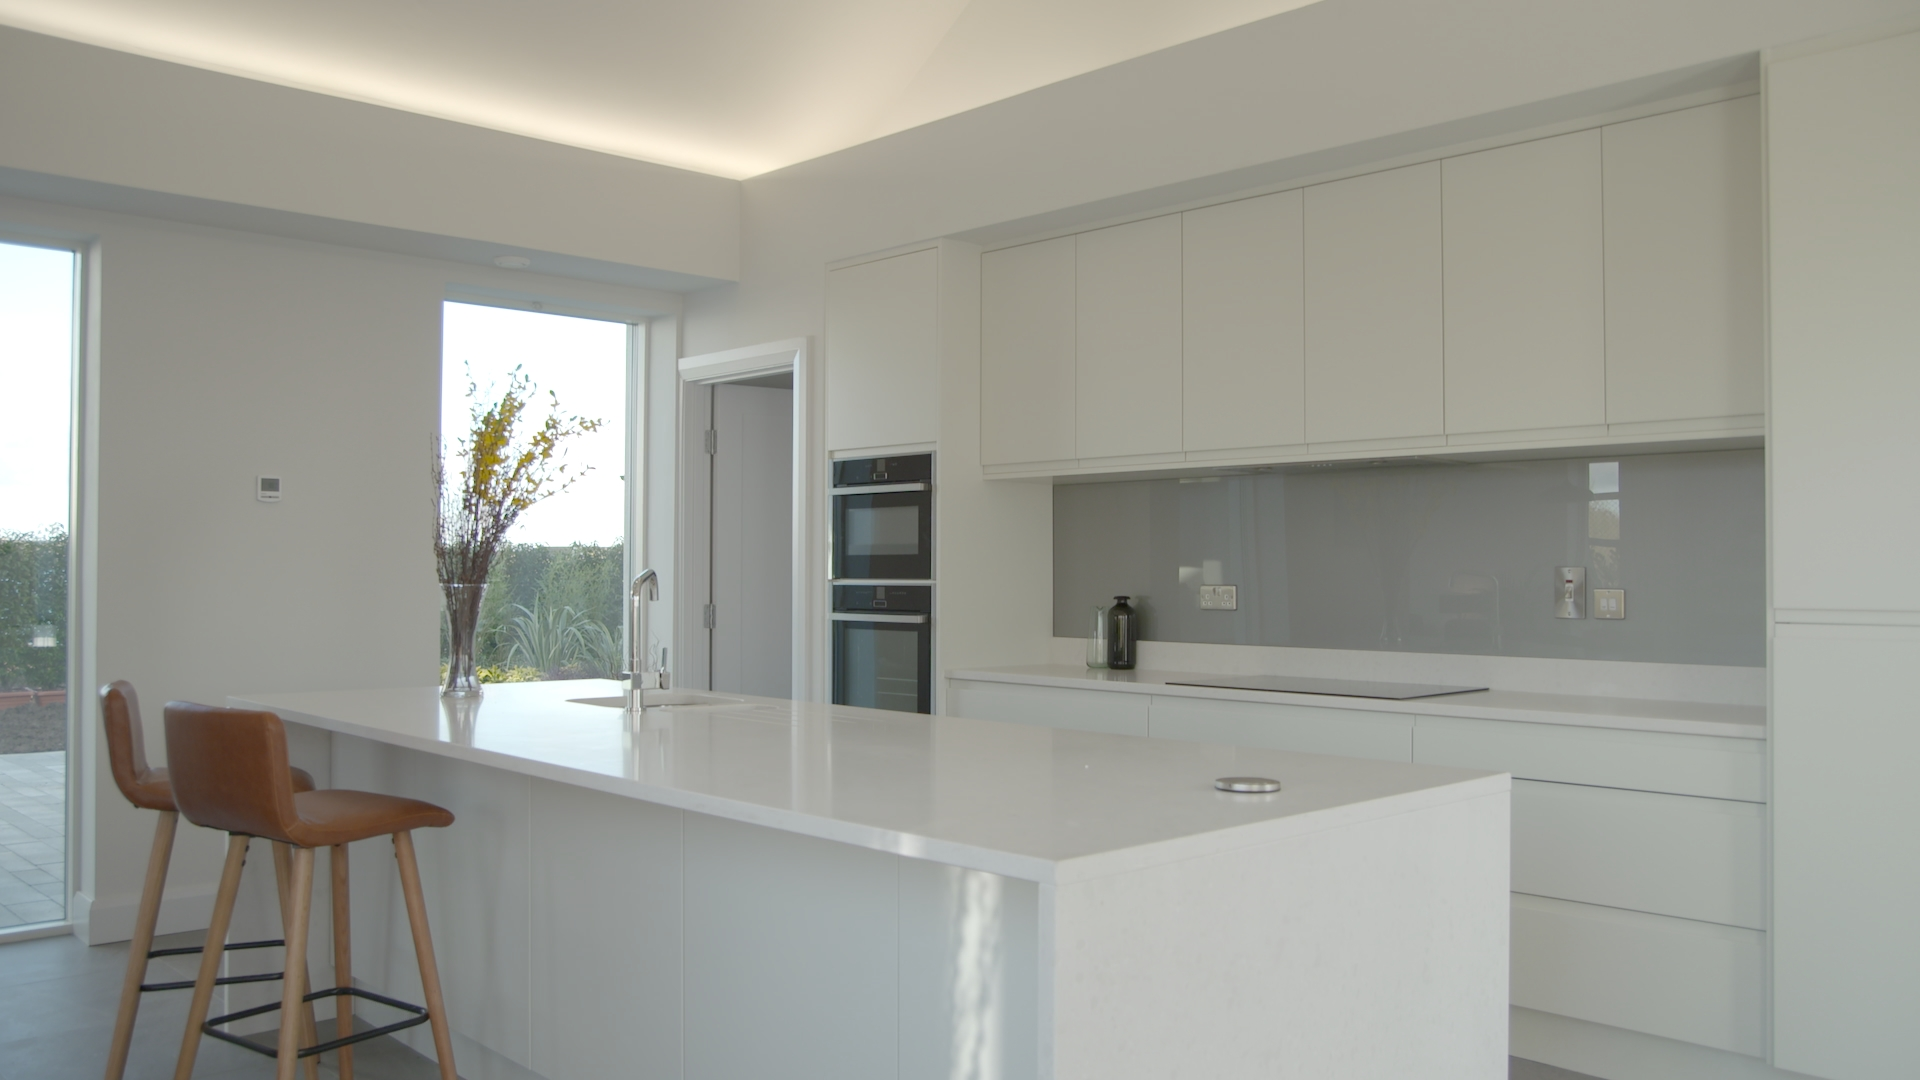 TX3 RTI10 Moate AFTER Kitchen  - Copy.jpg